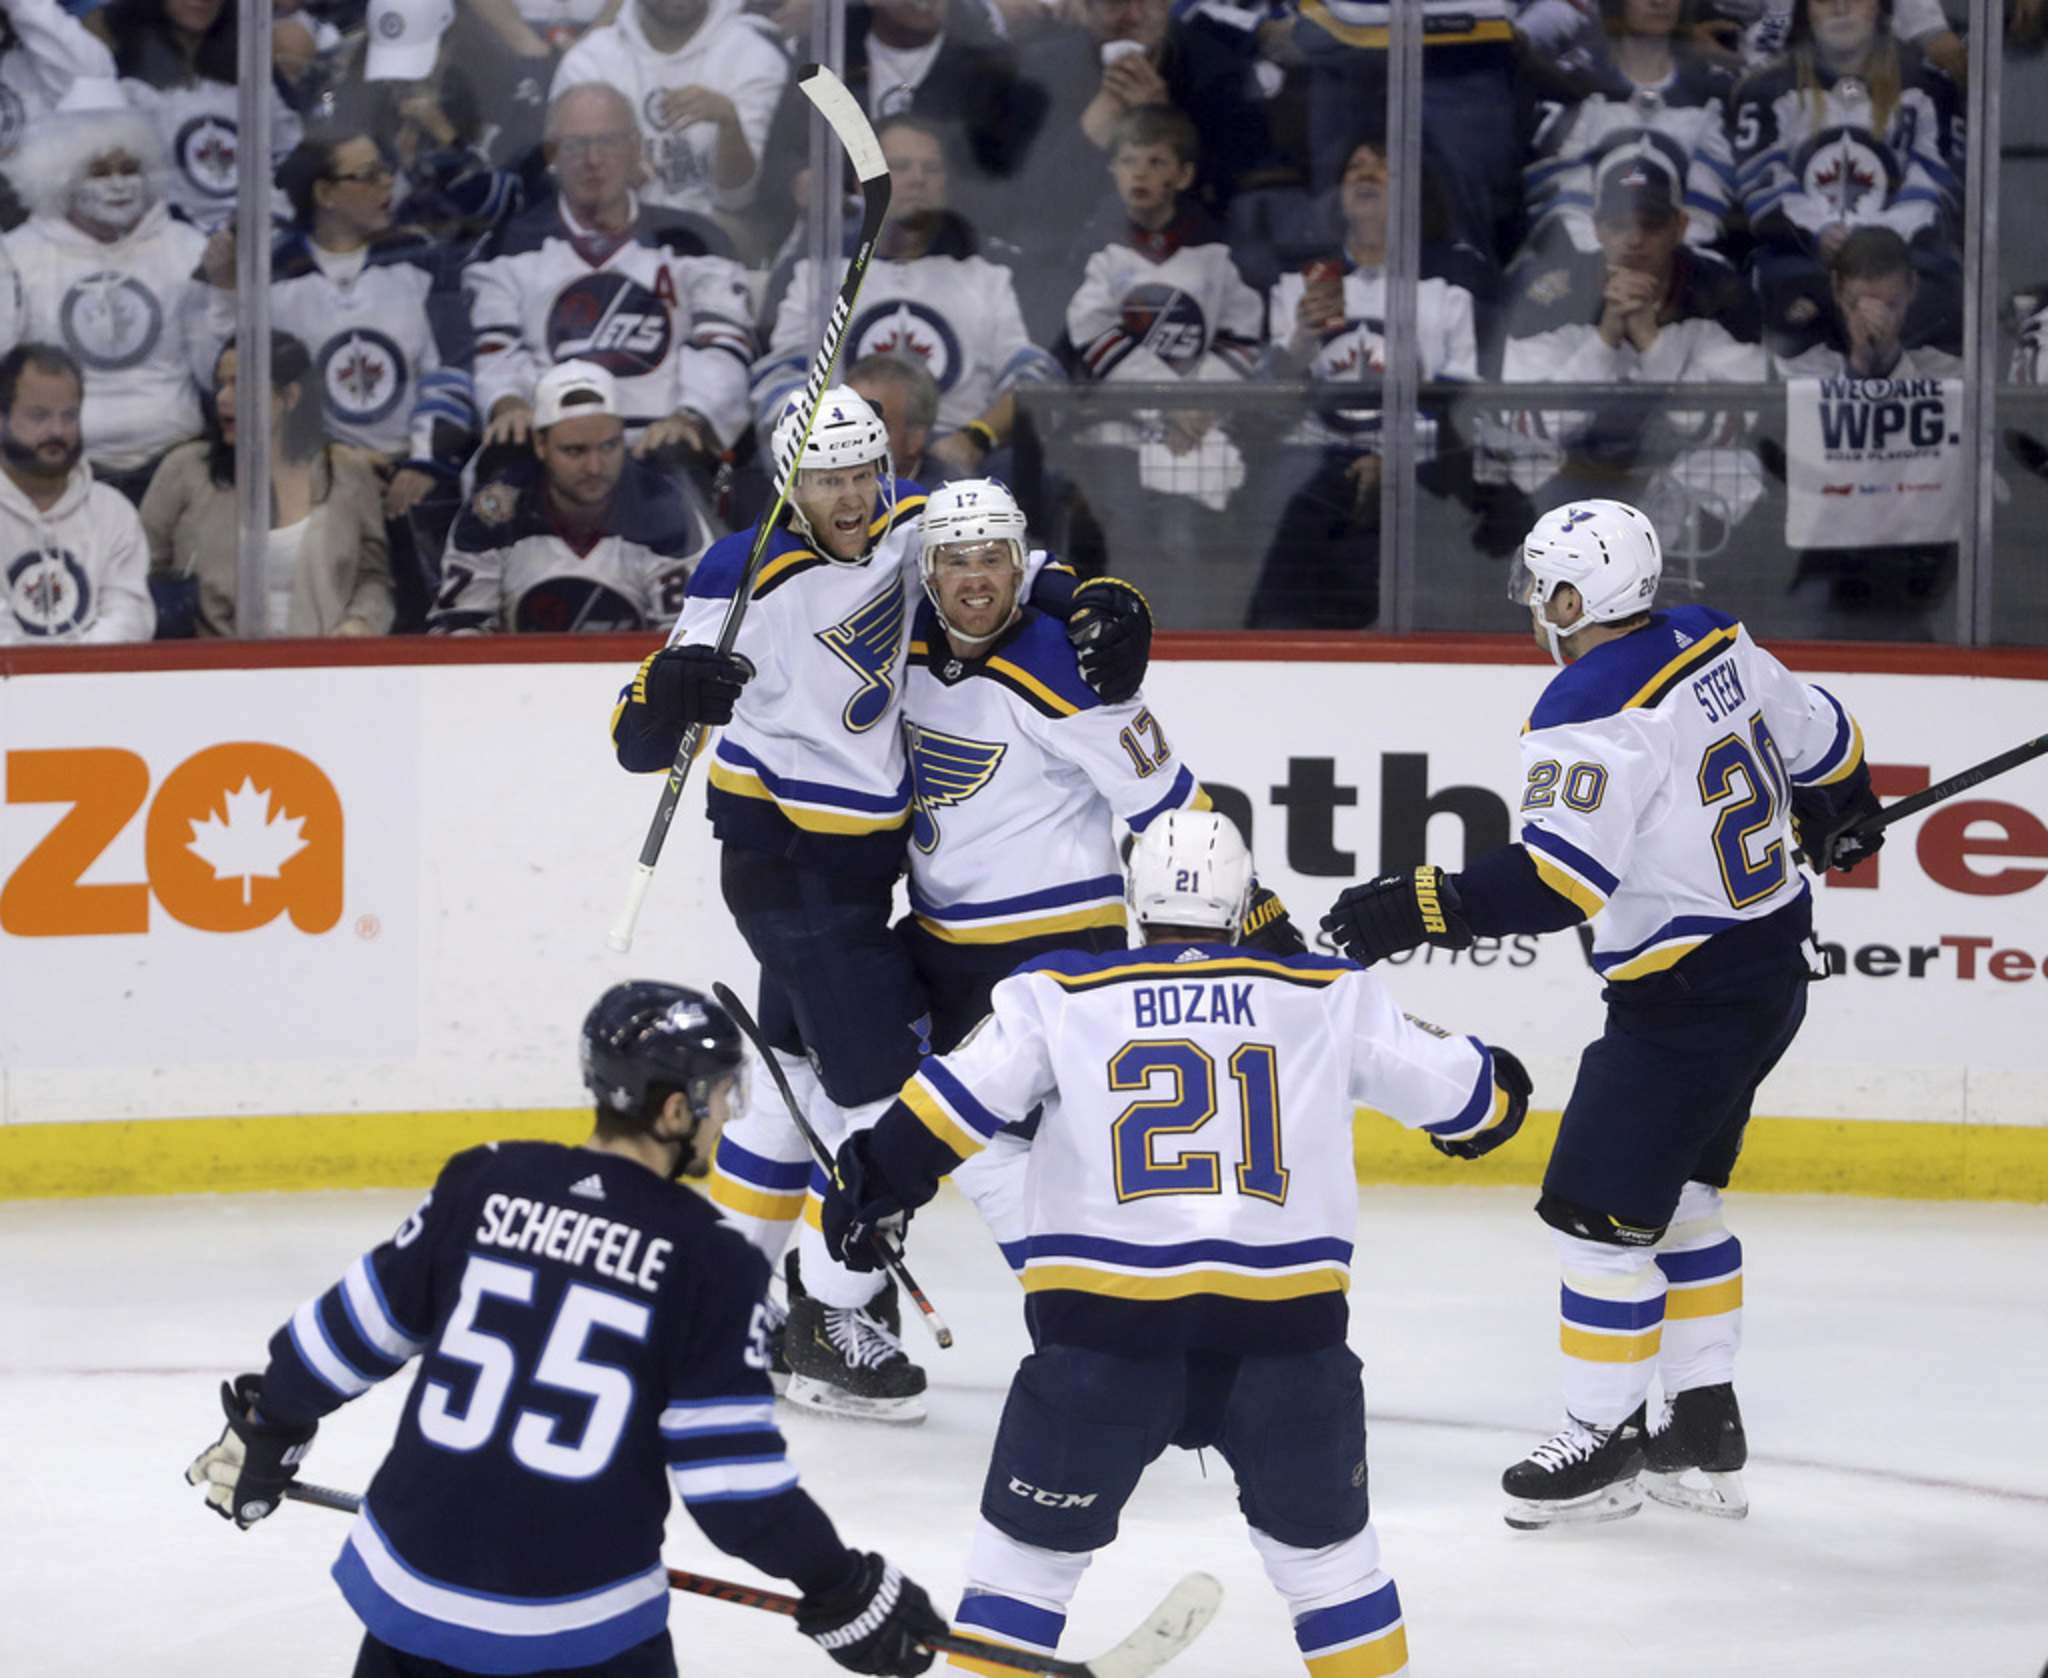 Blues stun Jets with late goals to get third win in Winnipeg